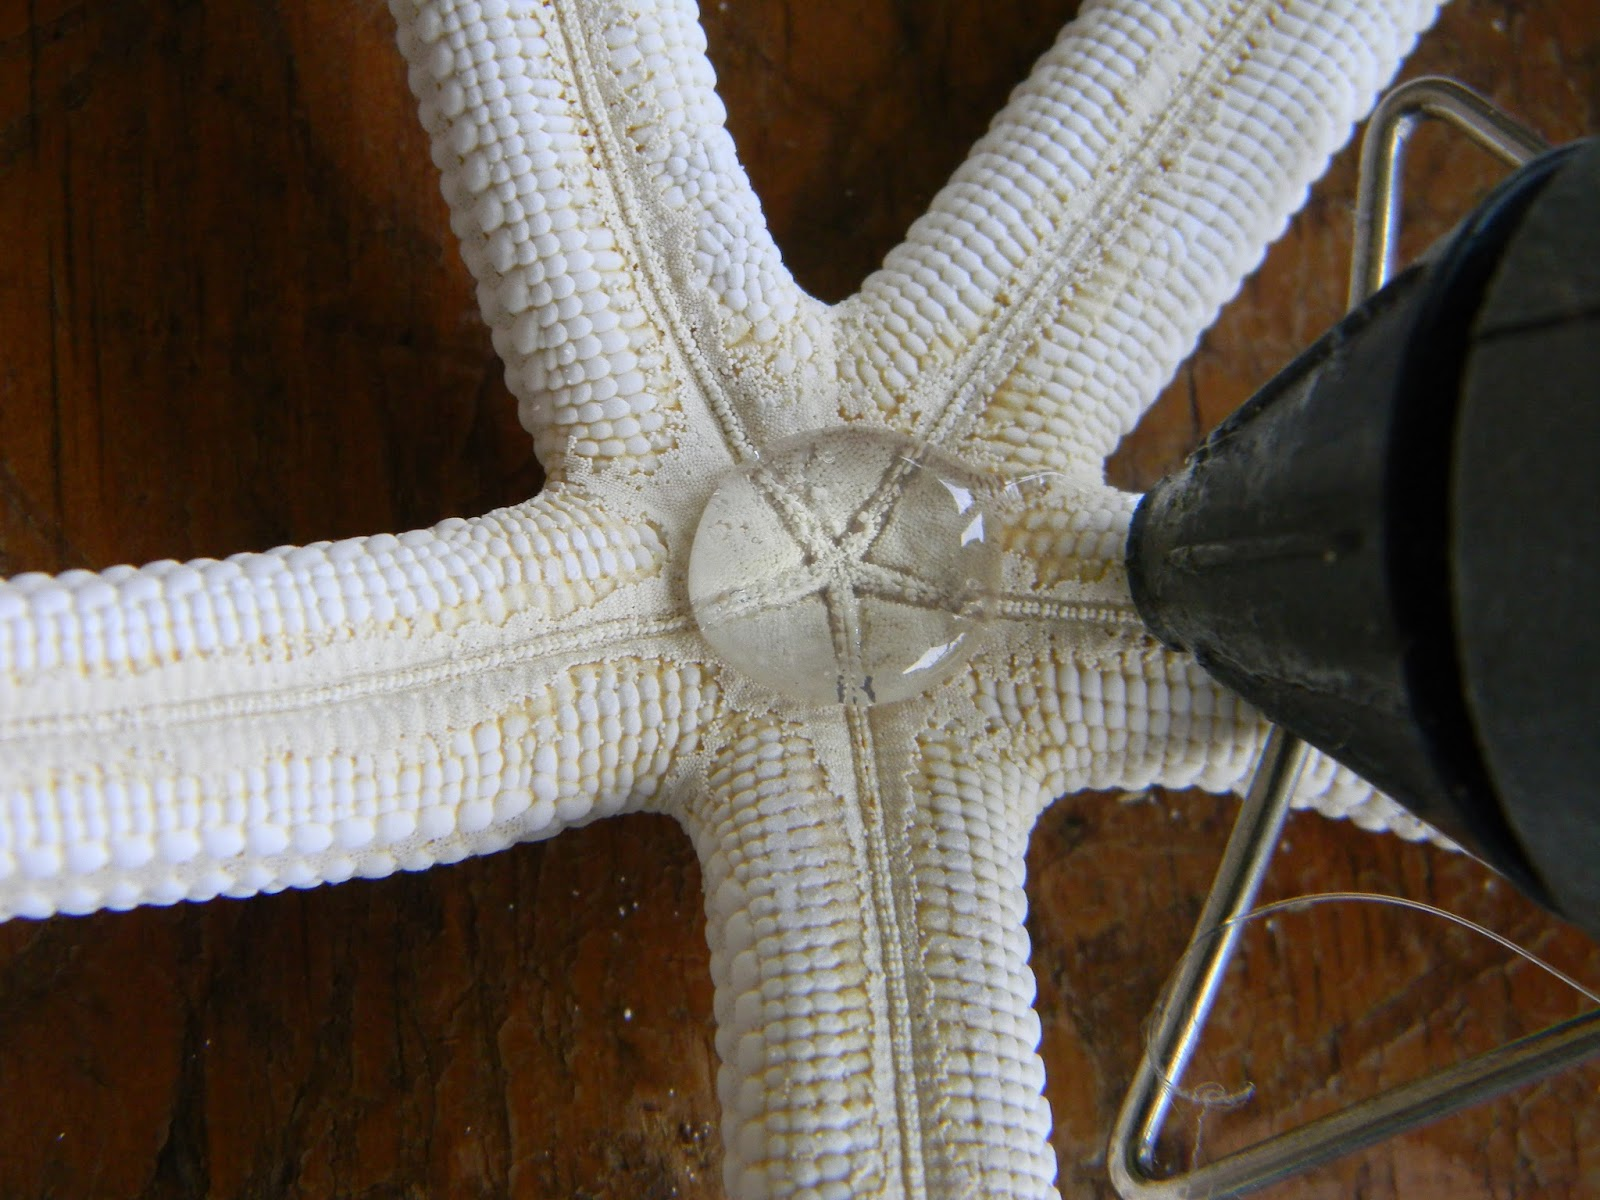 Artistic Endeavors 101 Star Fish Napkin Ring For A Beach